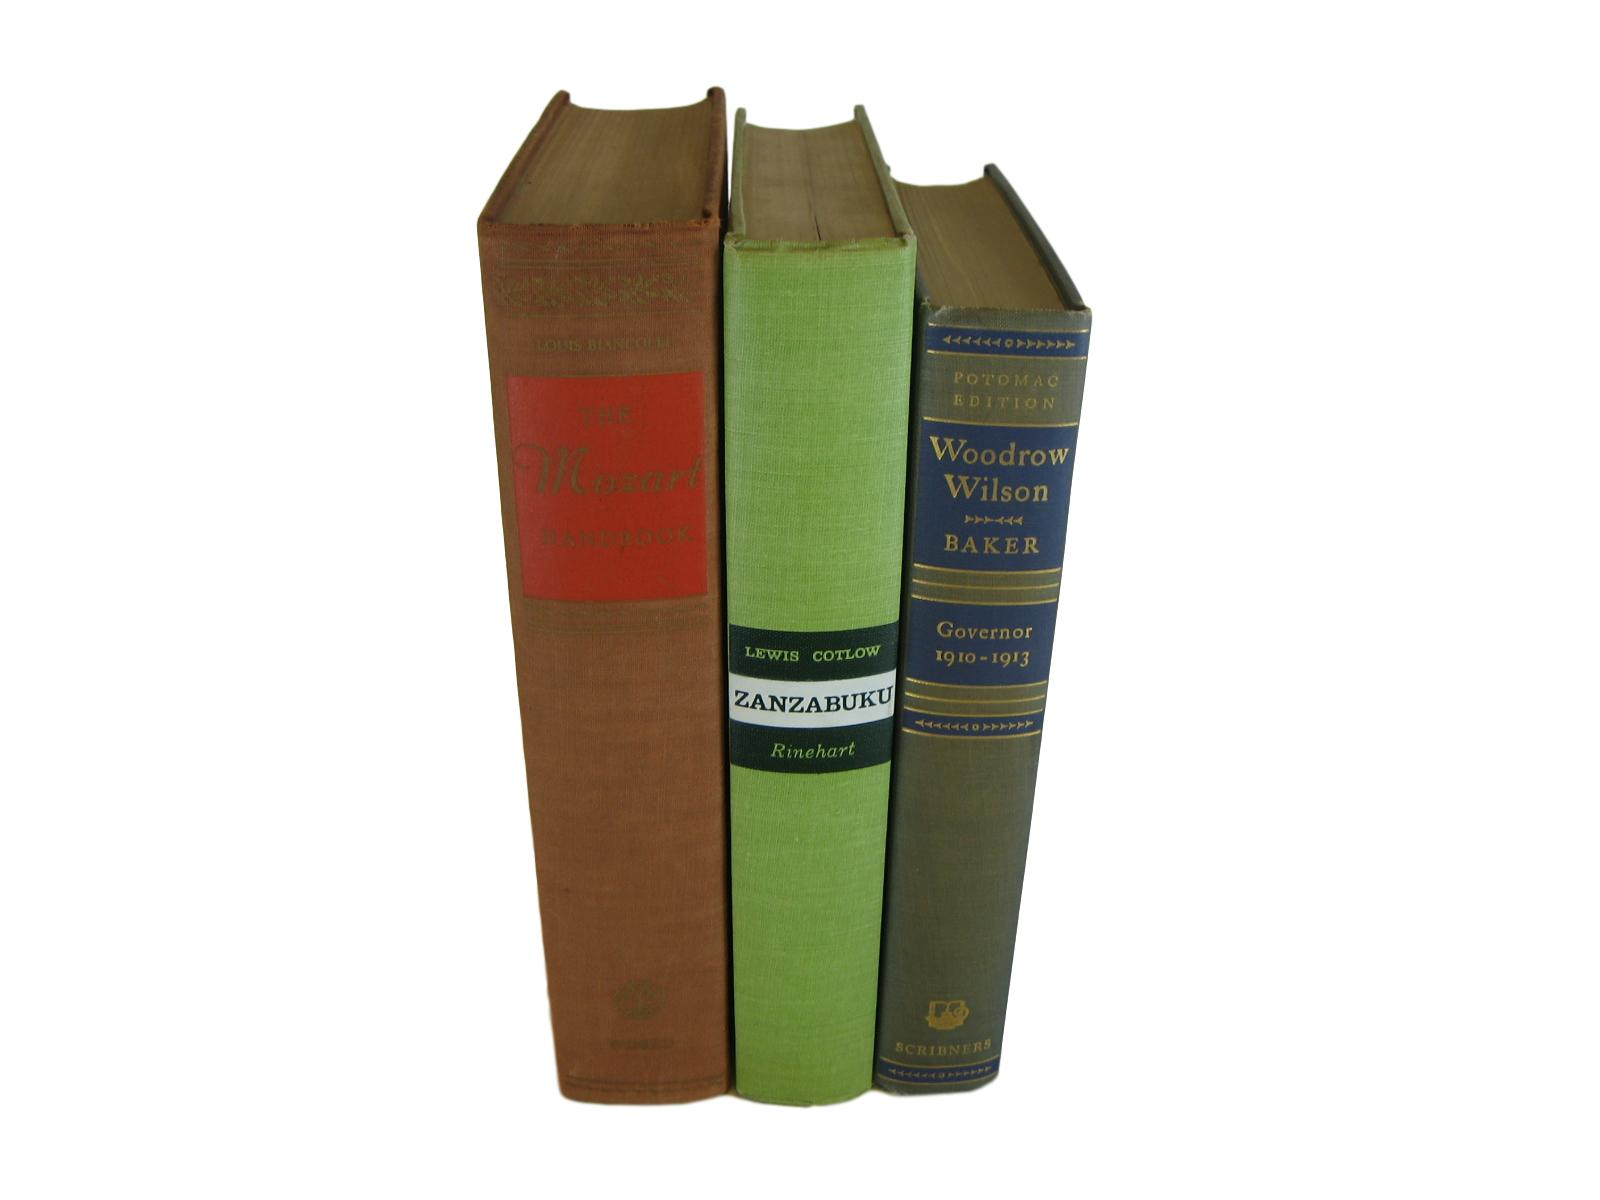 Vintage Decorative Book Accent Set in Green and Earth-tone - Decades of Vintage